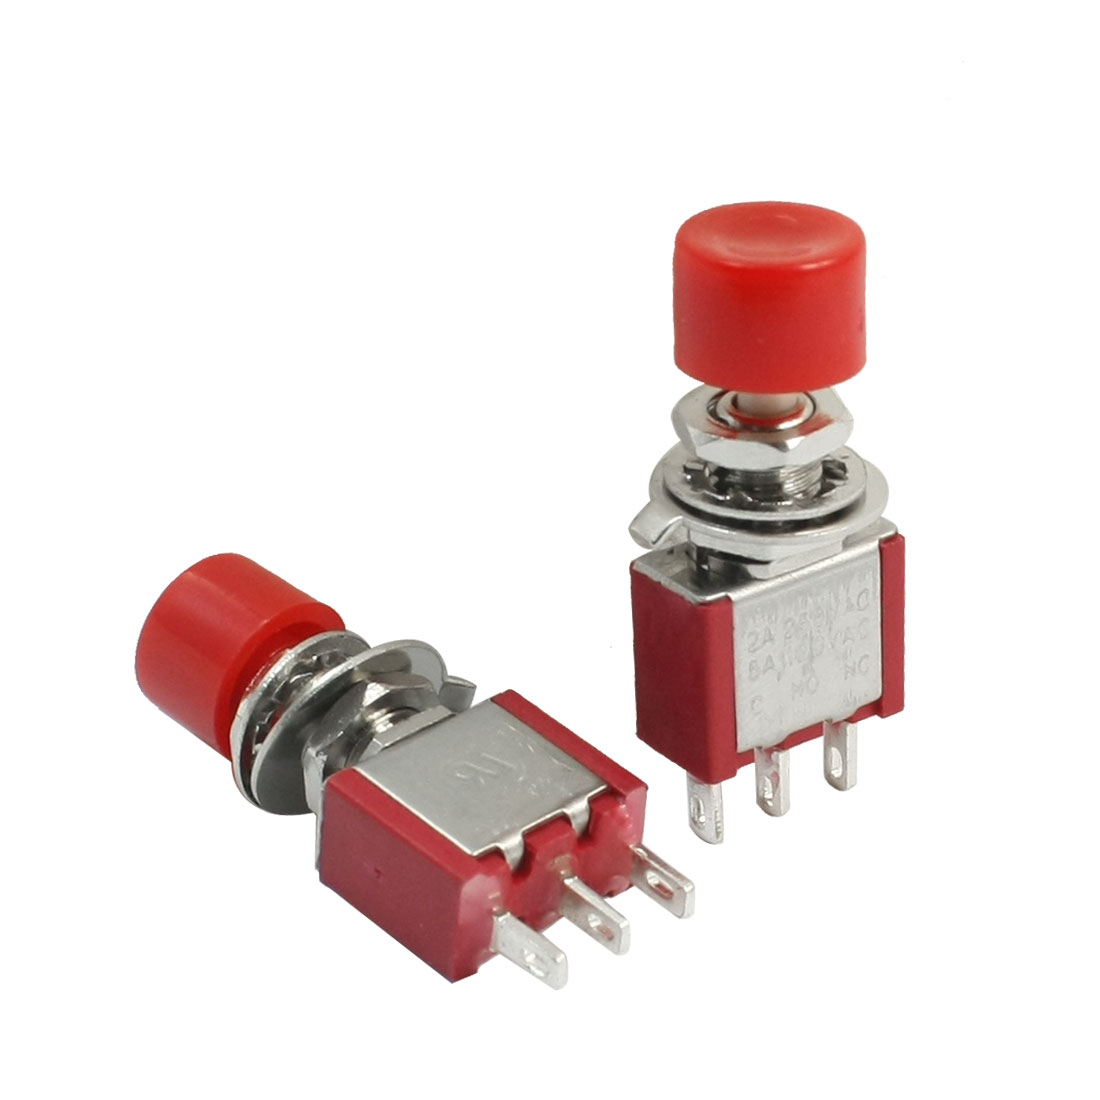 AC 250V 2A 3 Pole SPDT 1NO 1NC Momentary Red Round Push Button Switch 2Pcs